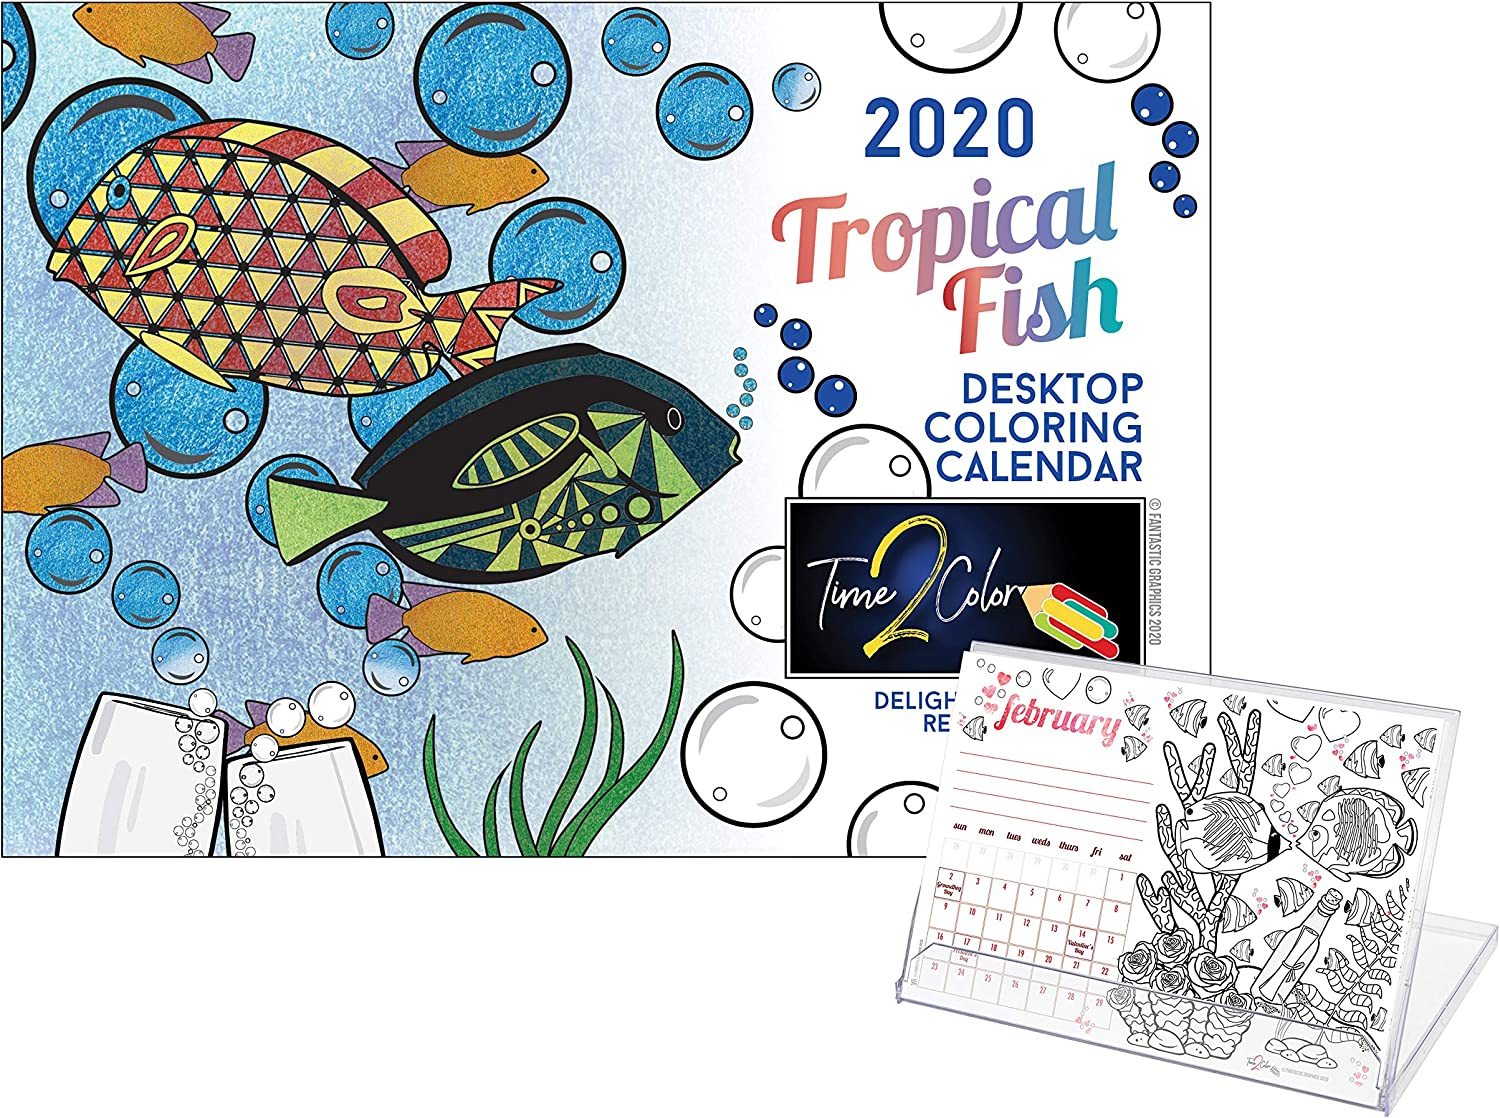 "Time2Color 2020 Standing Lucite Desktop Coloring Calendar: January to December (6"" X 8.5"") (Tropical Fish Theme)"